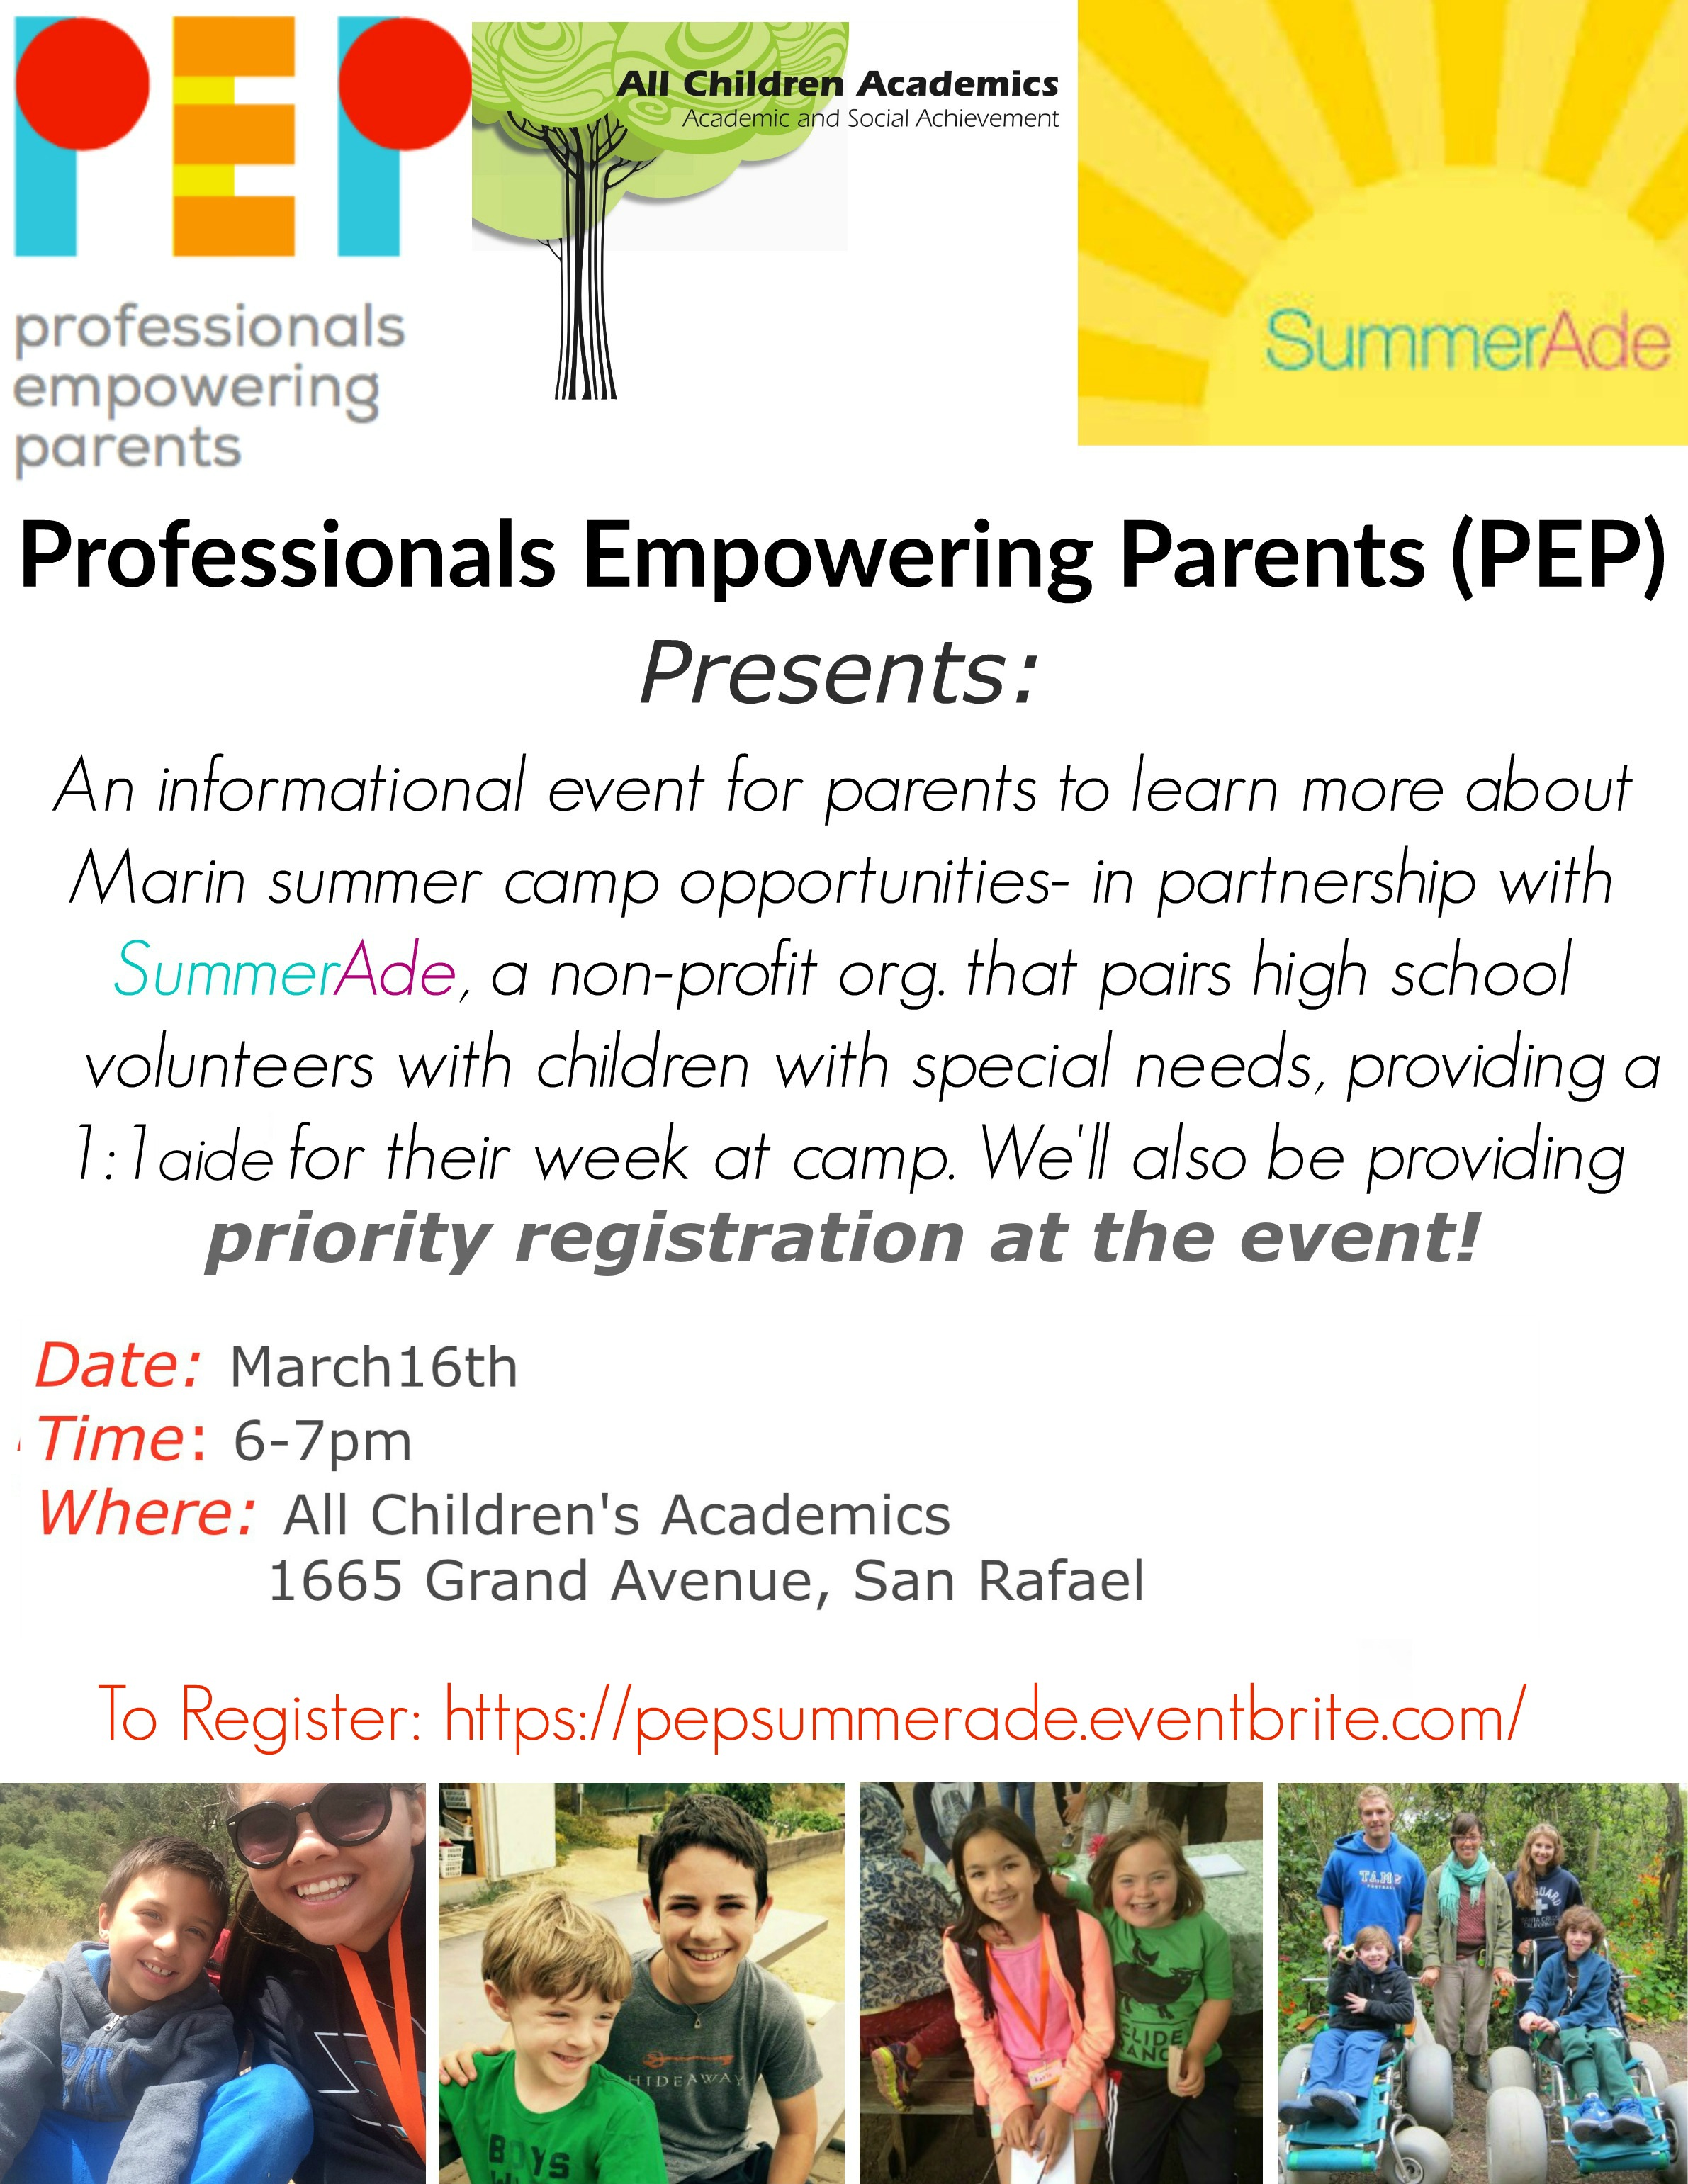 Professionals Empowering Parents (PEP) and All Children Academics bring you an informational event for parents to learn more about Marin summer camp opportunities- in partnership with SummerAde, a nonprofit organization that pairs trained high school volunteers with children with special needs, providing a 1:1 aide during their camp experience.Jordana Perman,Director of Community Outreach and Strategy of SummerAde, will be speaking about the program. We will also hear from a prior Summerade teen mentor about their experiences working 1:1 to support students at camp.    Priority registration will be available to all who attend!    Learn more about Summerade and the Marin summer camps they work with: http://summerade.org/